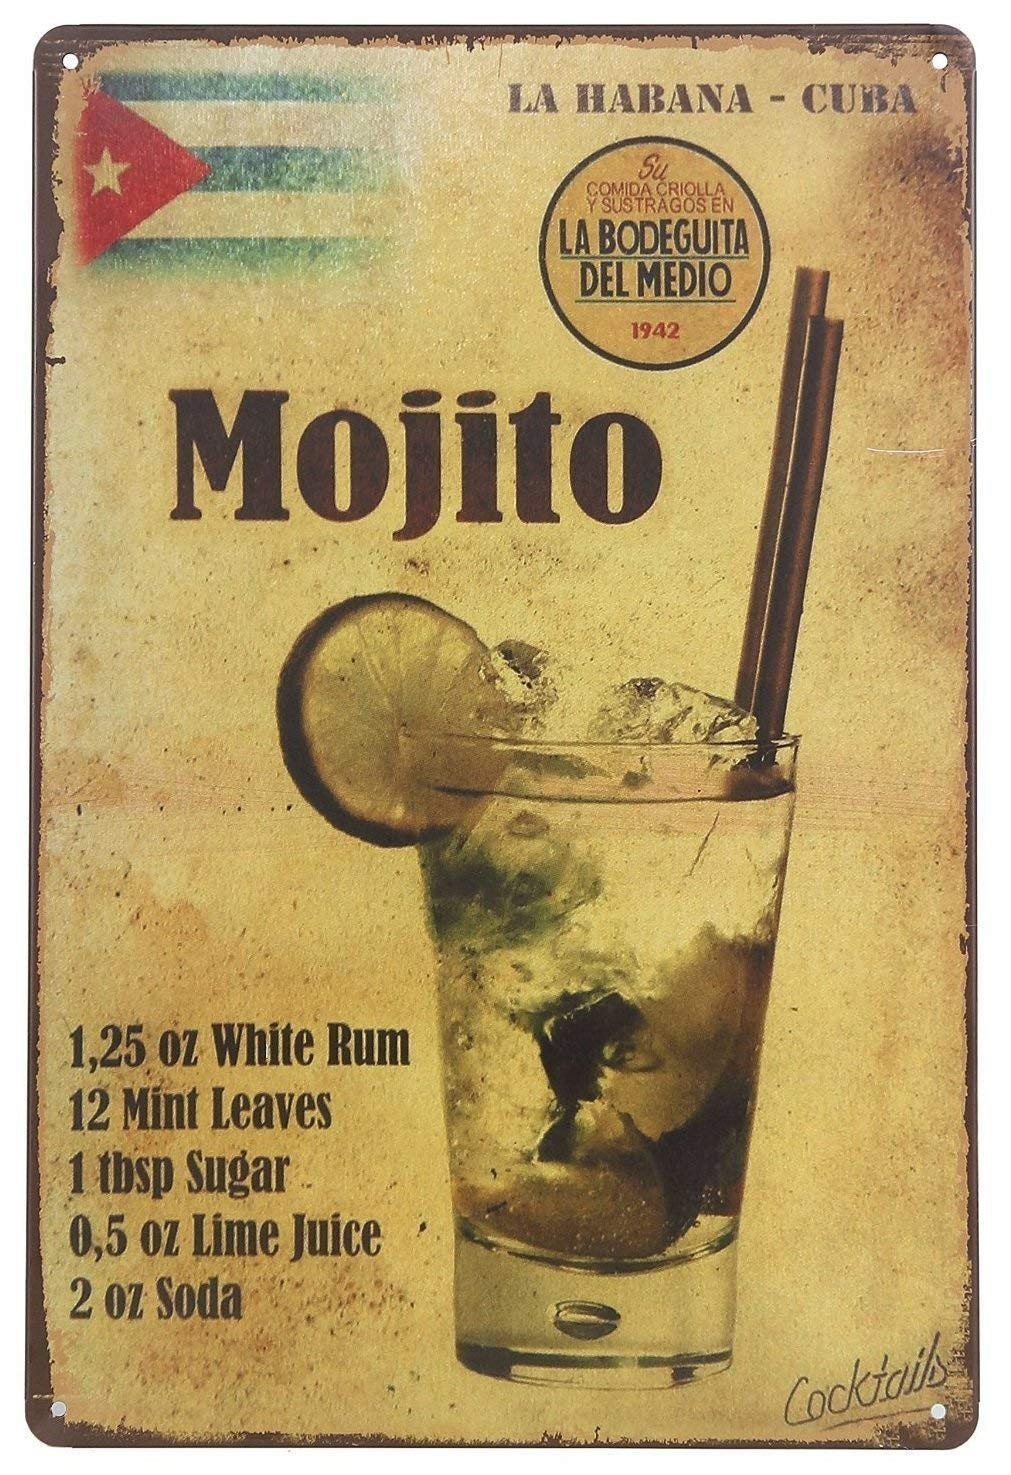 Forever_USA Tin Sign   Metal Wall Sign   Mojito Drink Recipe La Habana Cuba 8 x 12 in.   Cool Decorative Sign for Home Kitchen Bar Room Garage Decor   Vintage & Retro Style